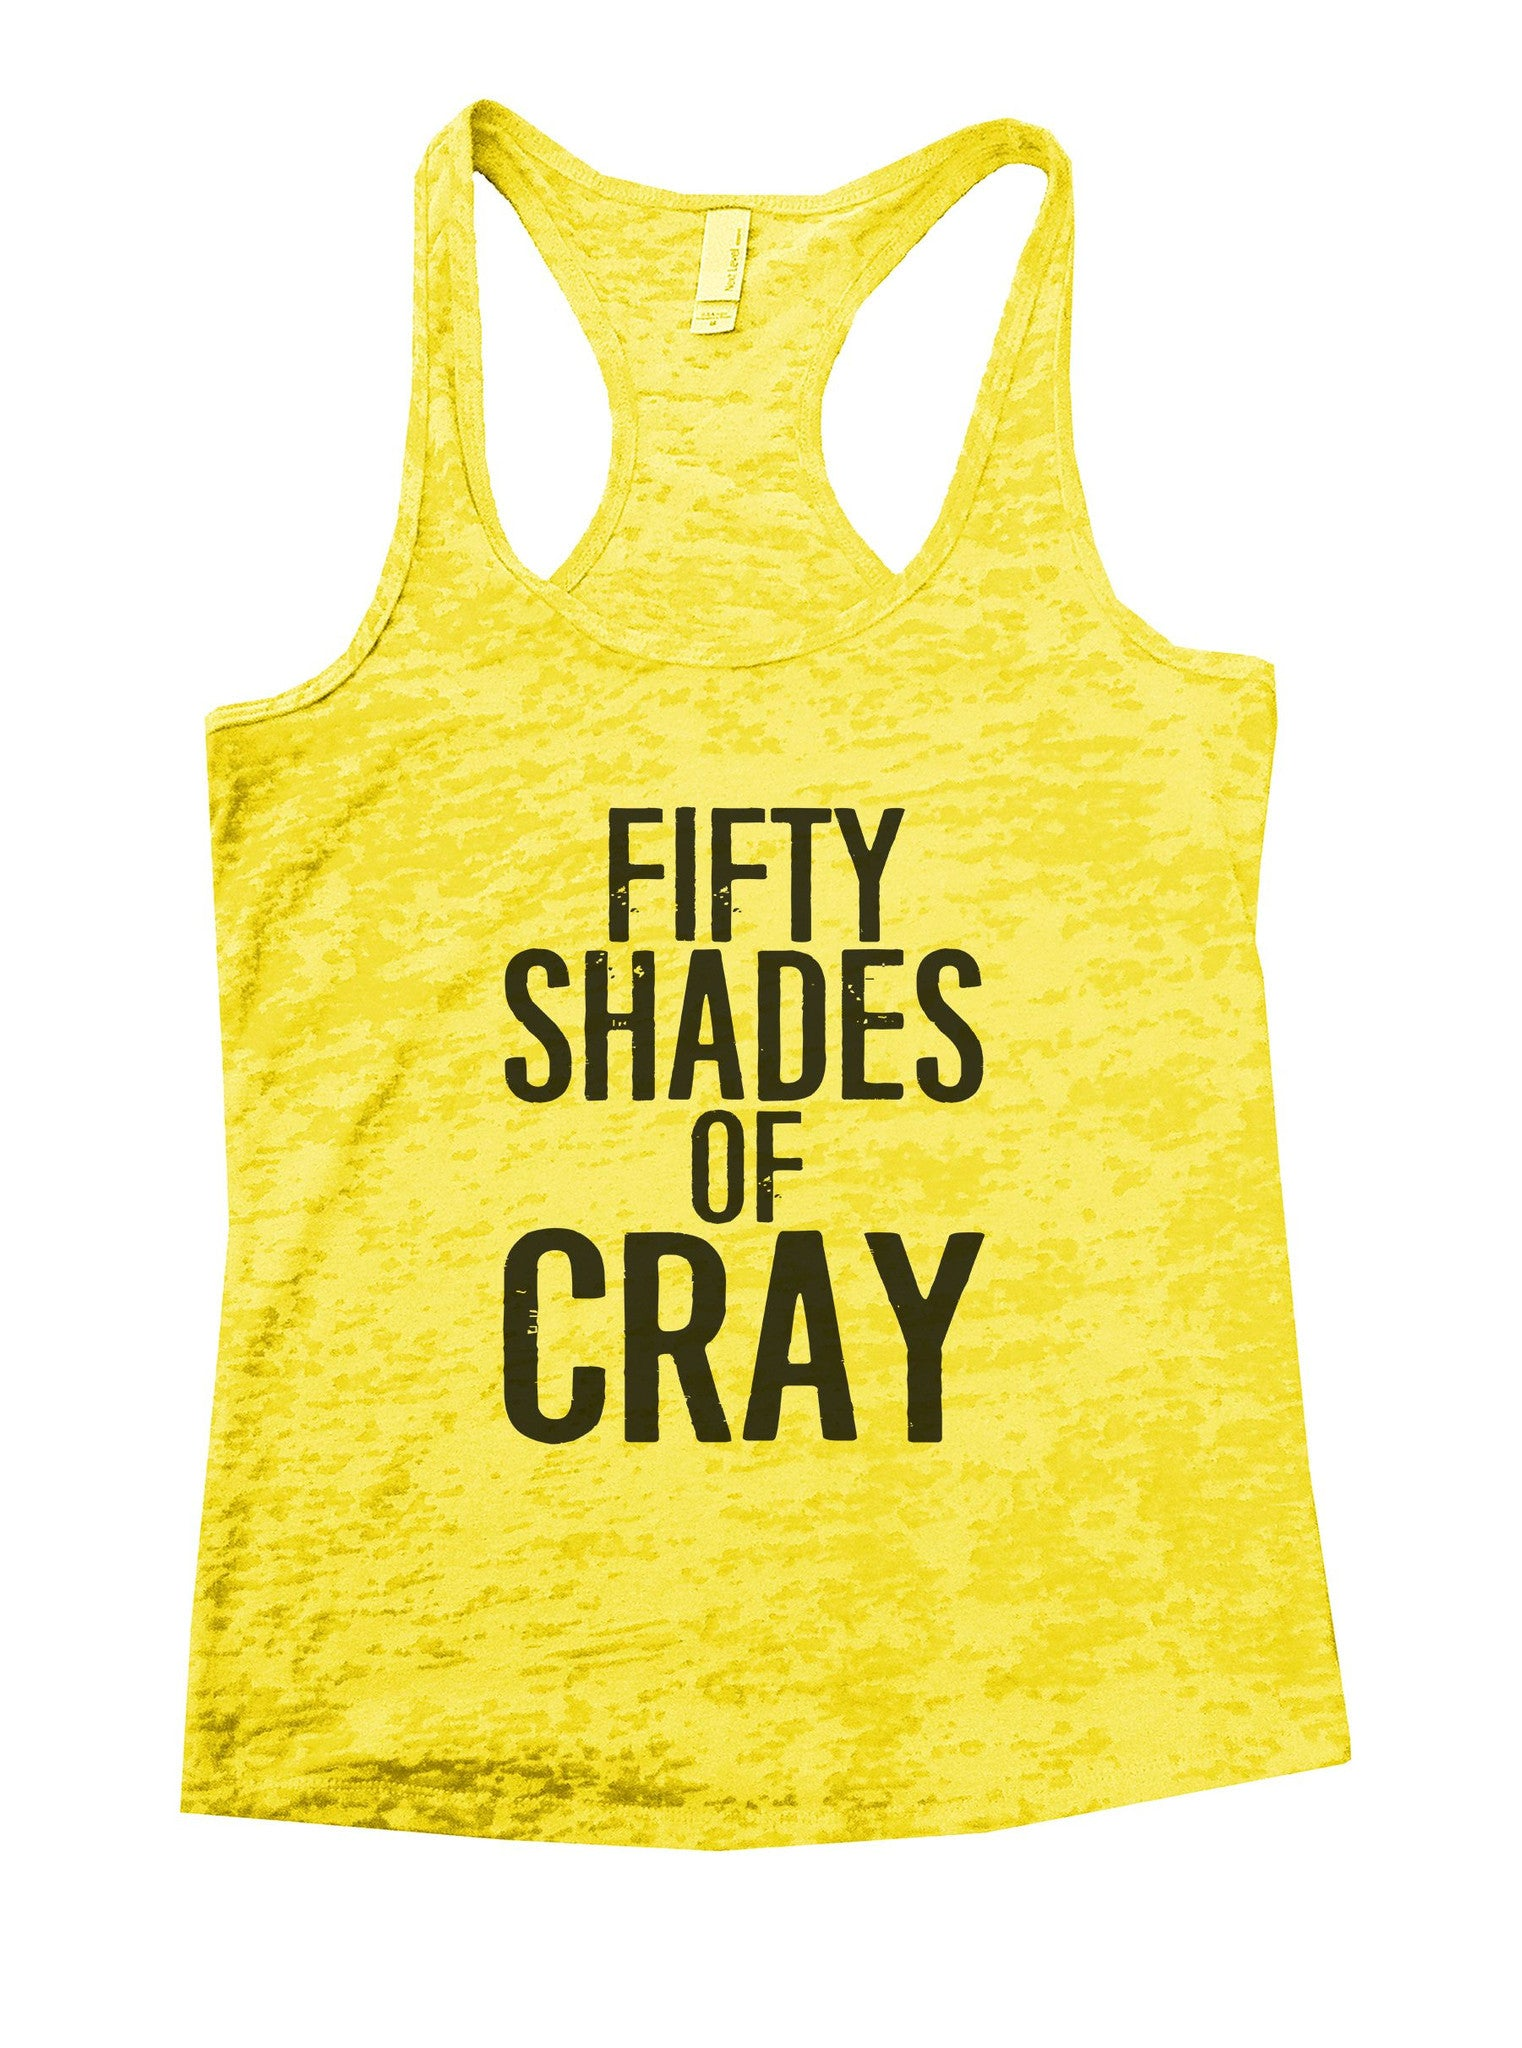 Fifty Shades Of Cray Burnout Tank Top By BurnoutTankTops.com - 1098 - Funny Shirts Tank Tops Burnouts and Triblends  - 7